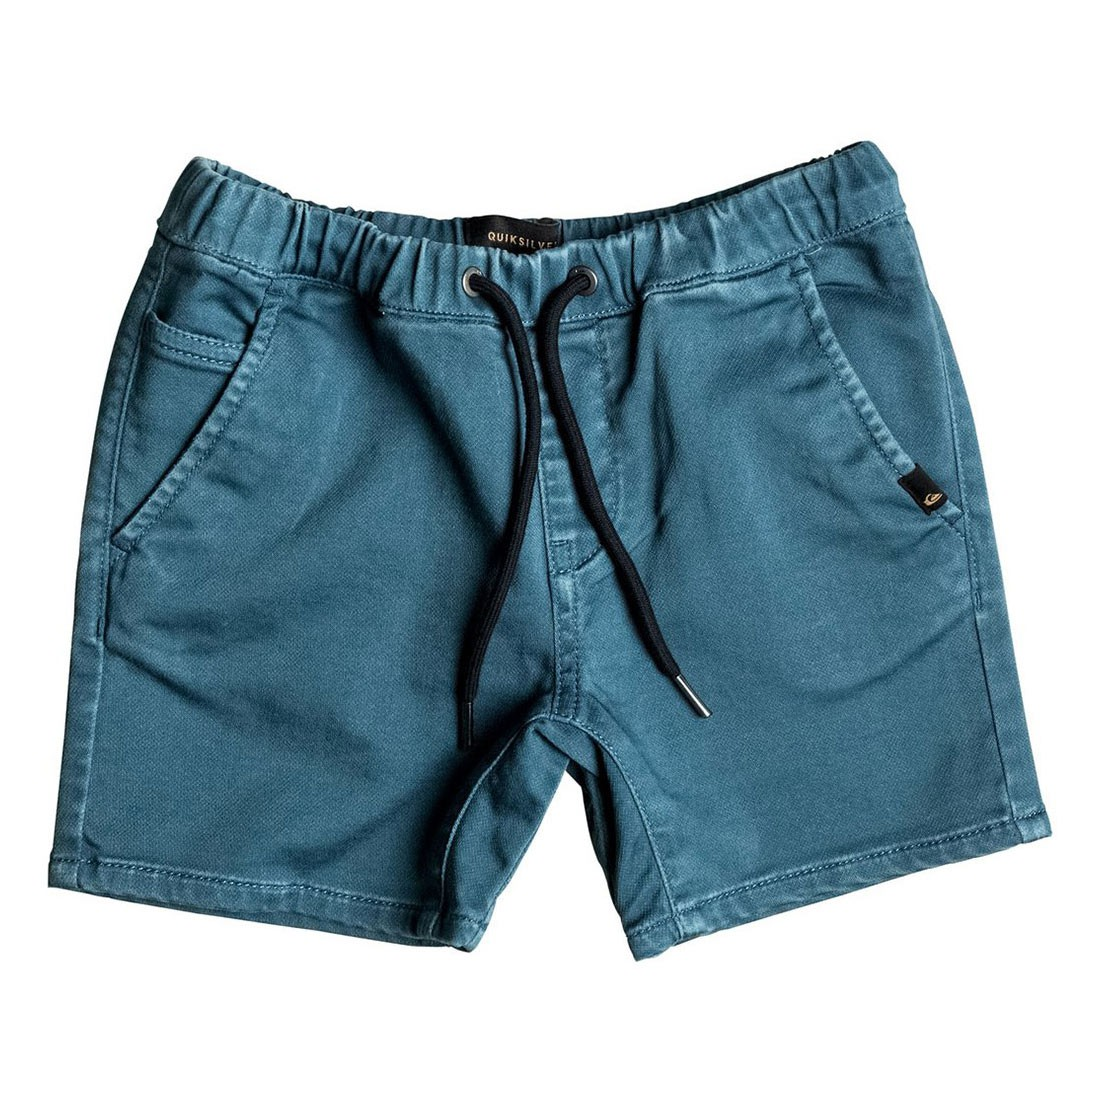 Kraťasy Quiksilver Fonic Short Boy indian teal